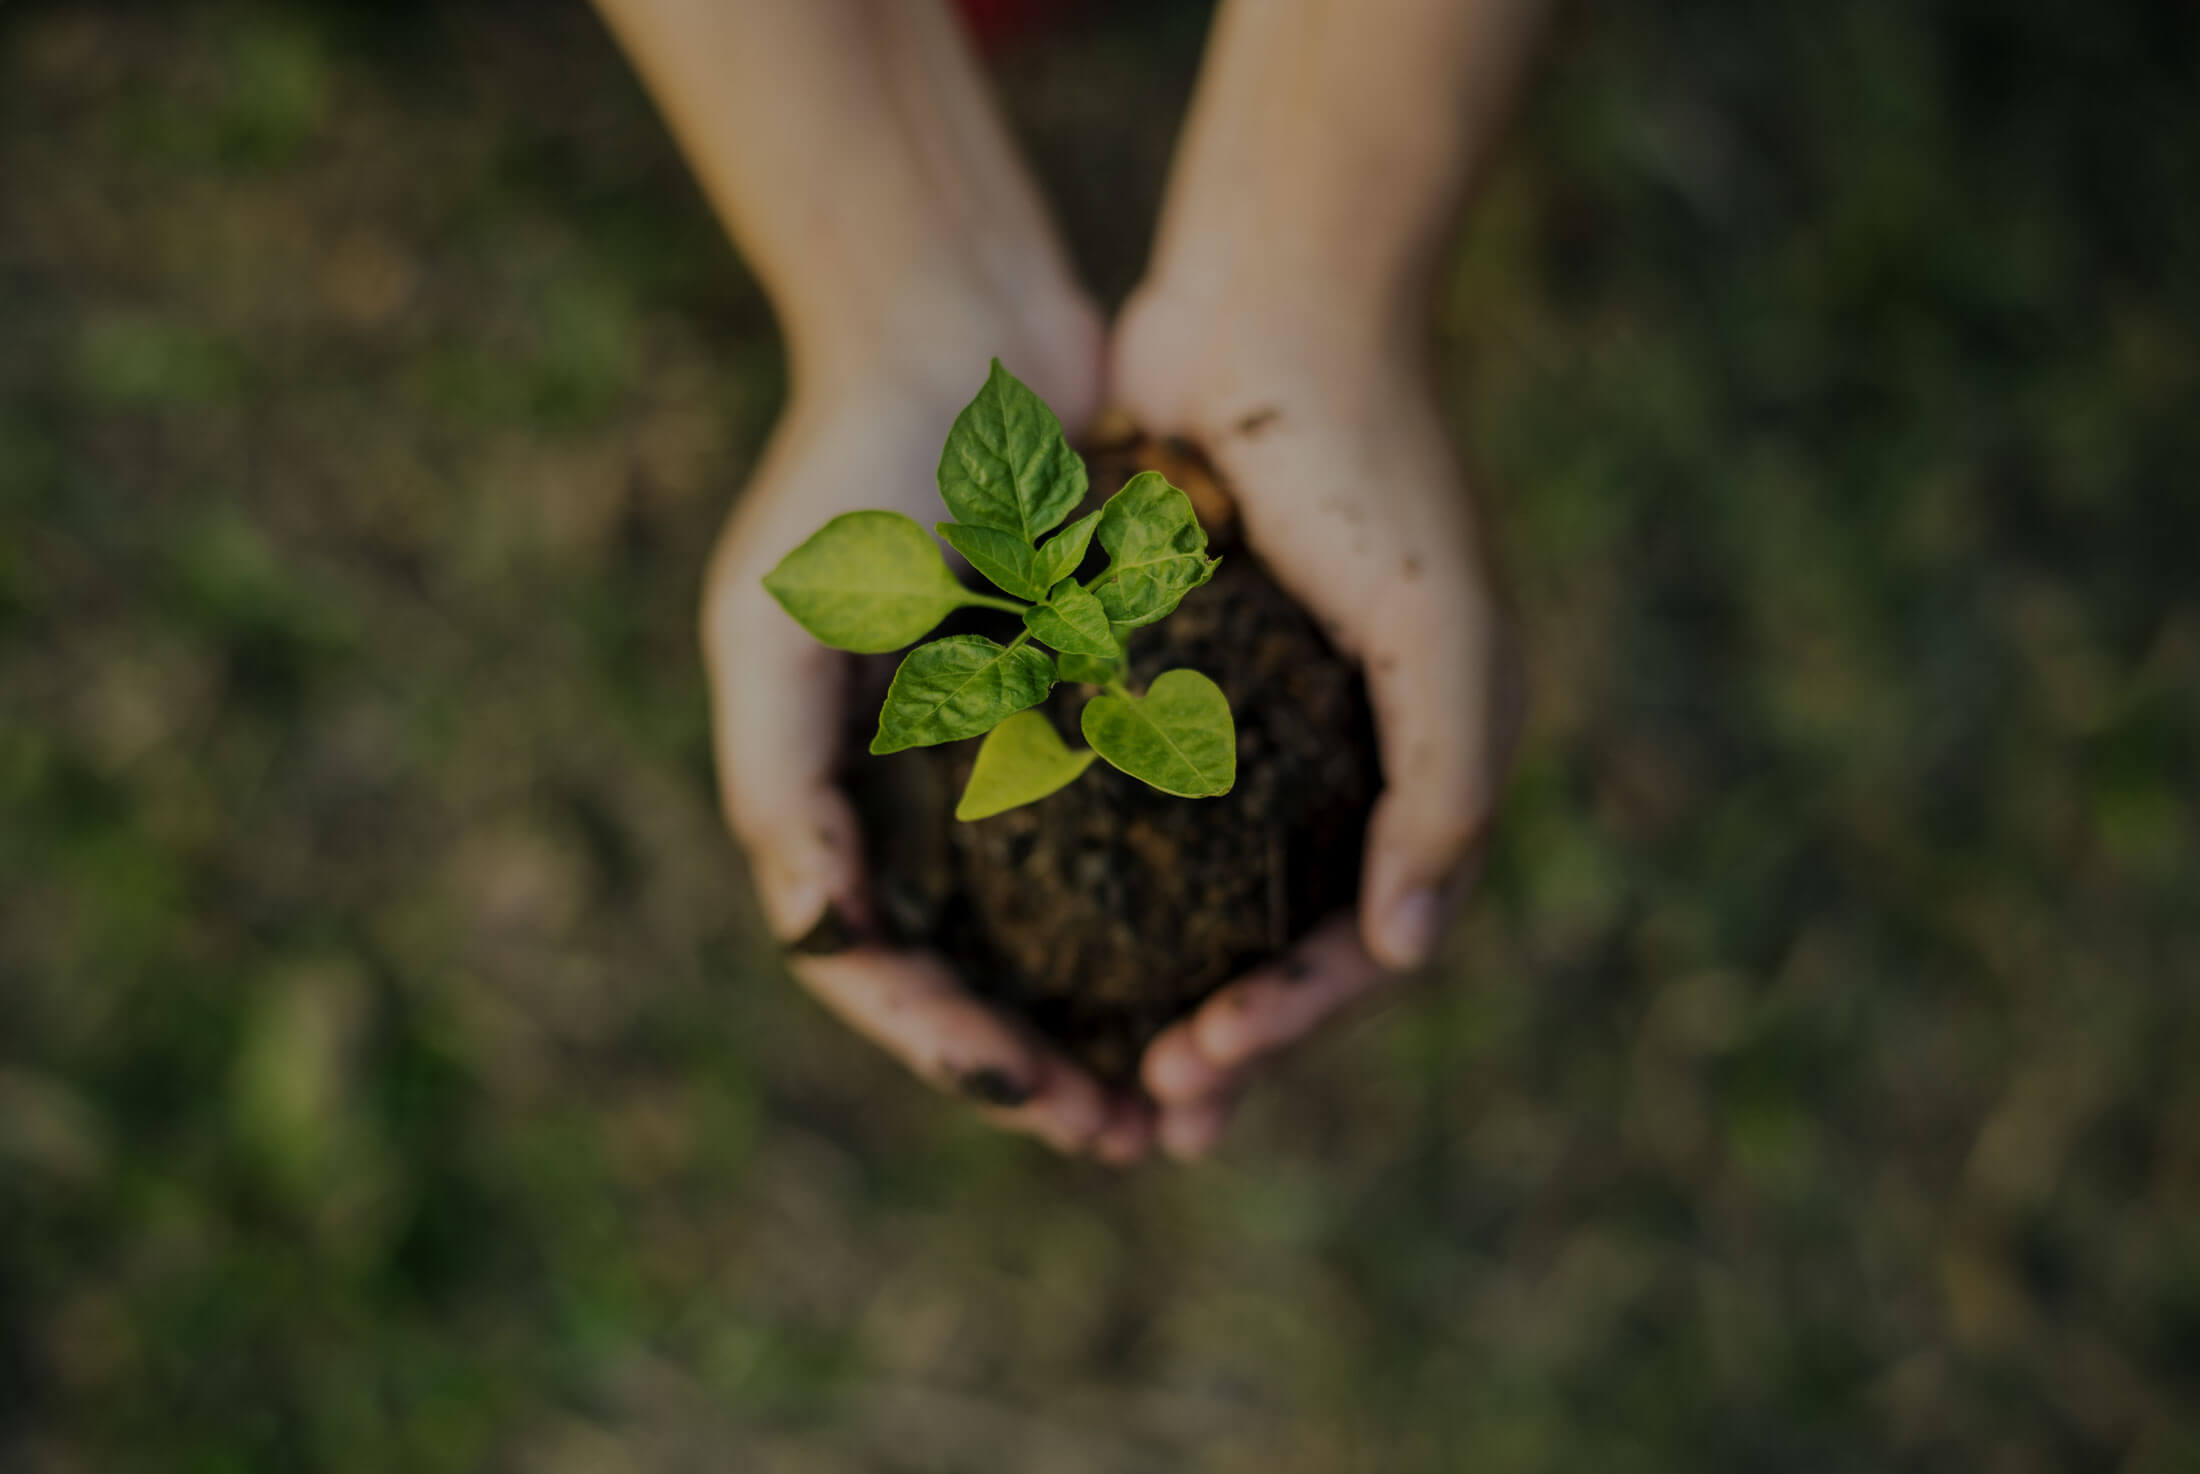 Pair of hands holding a small green plant